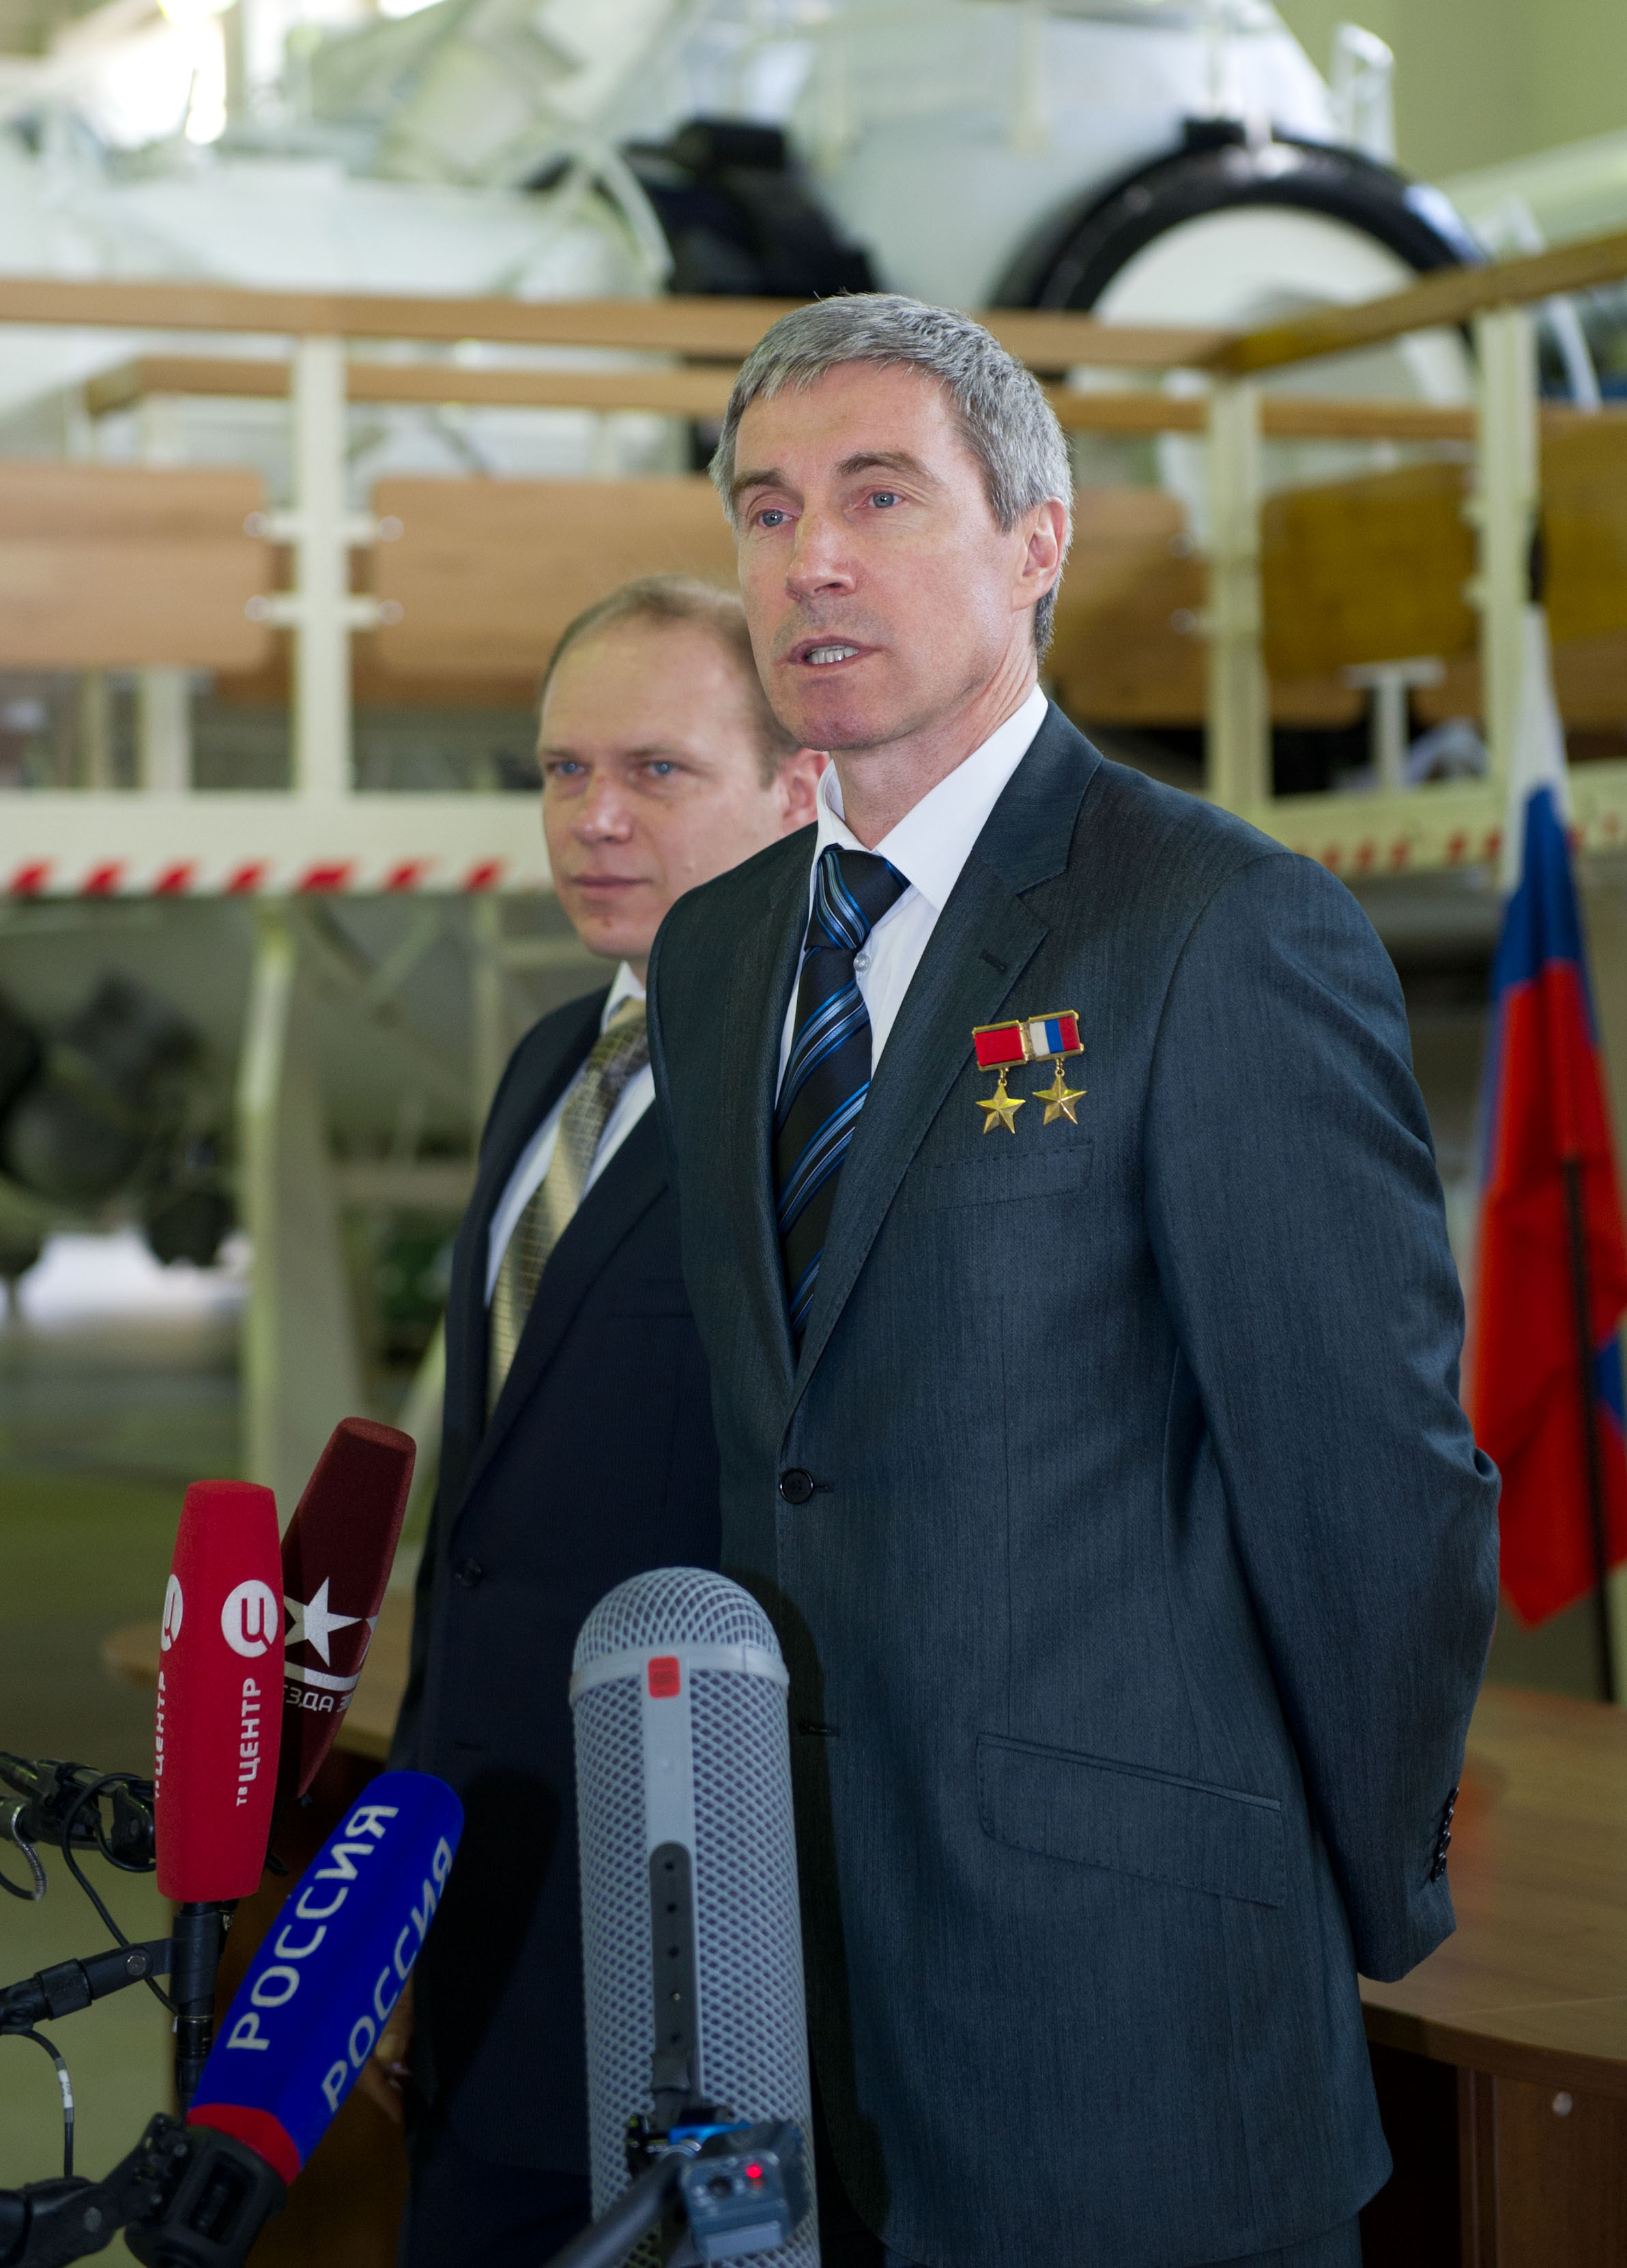 Sergey Krikalev - the most famous Russian cosmonaut after Gagarin, who was forgotten in space